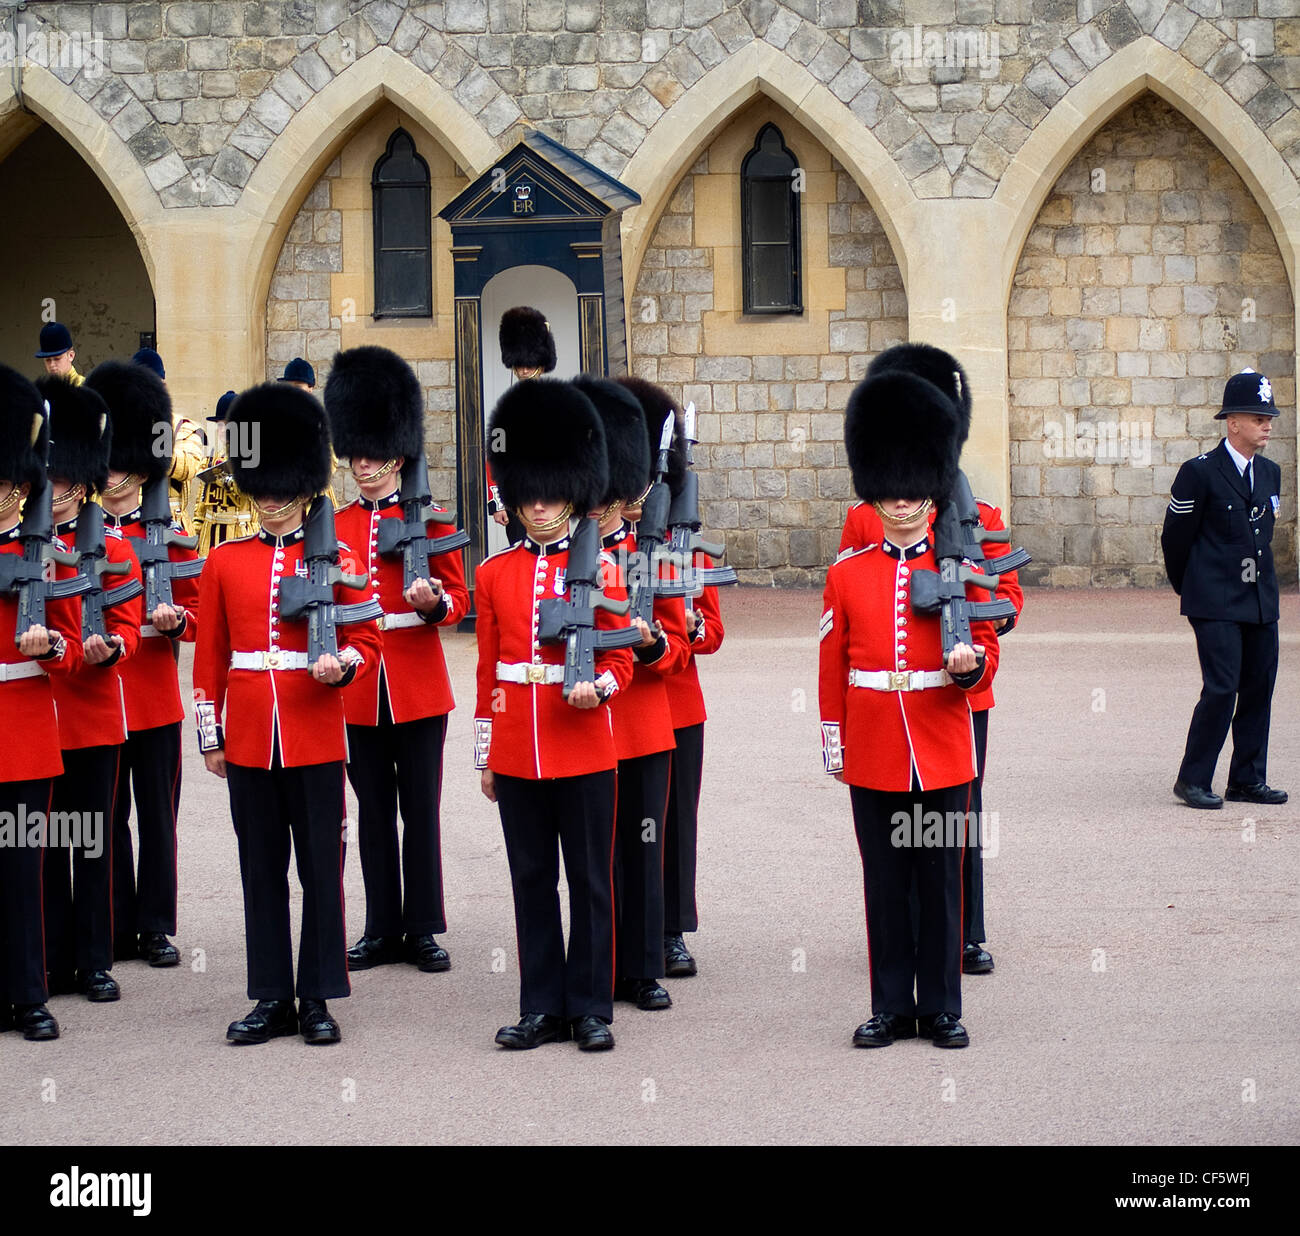 Guardsmen ready to march during the annual Garter Day ceremony at Windsor Castle. - Stock Image